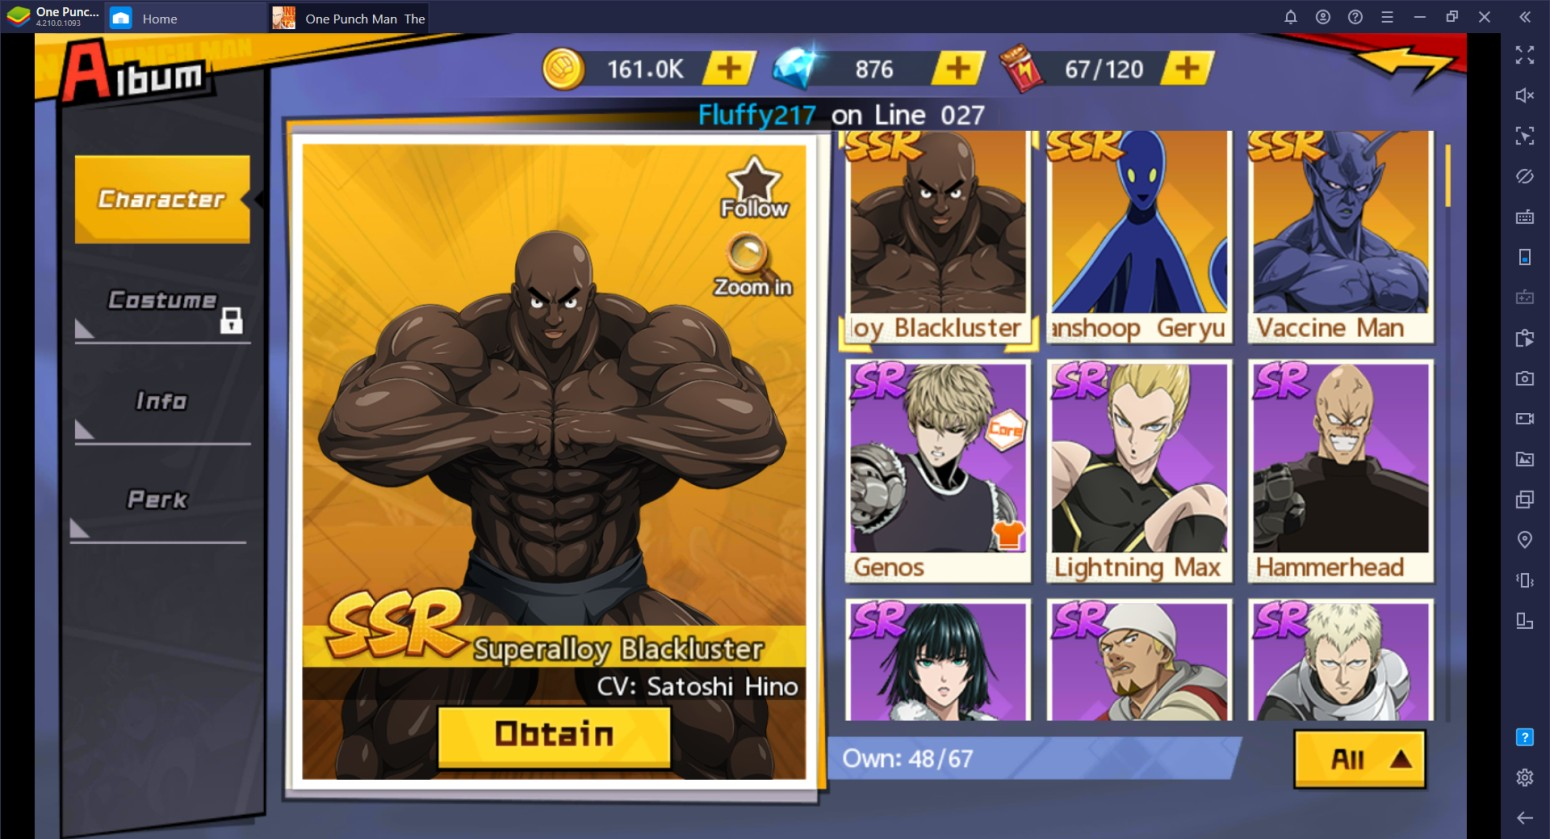 ONE PUNCH MAN: The Strongest Unit Tier List - The Best Units in the Game